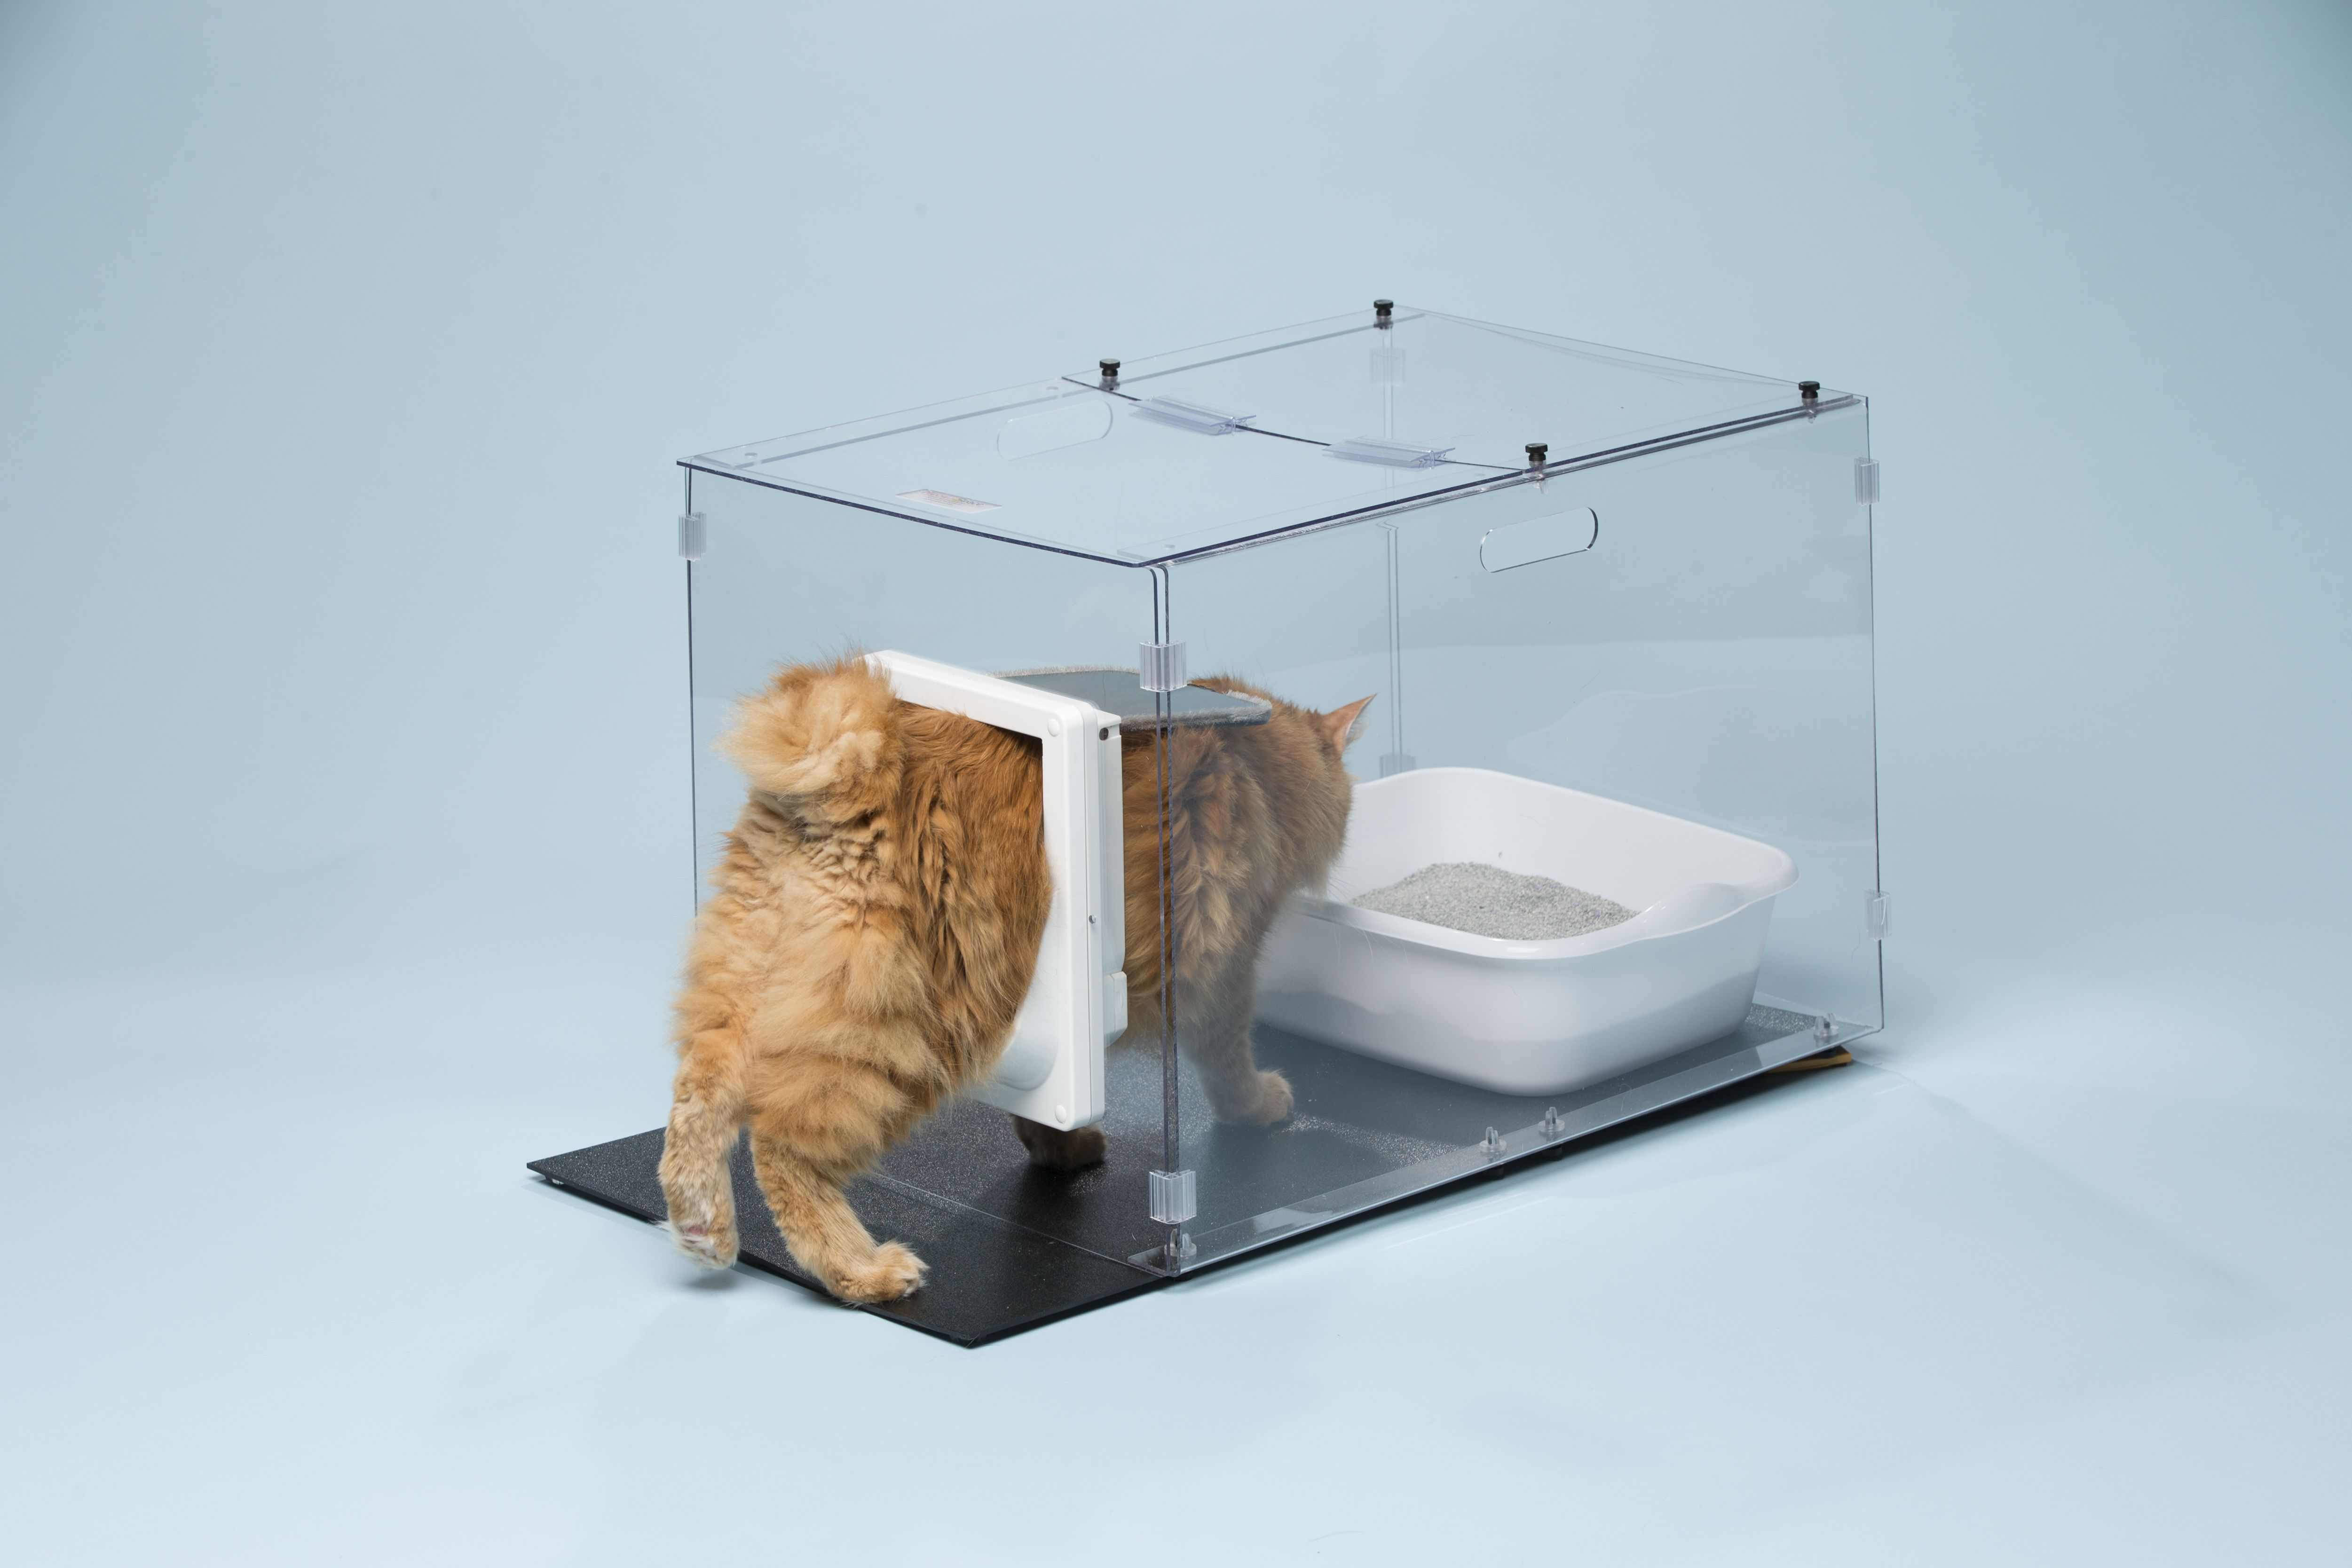 Keeping The Dog Out Of The Litter Box Cat Has A Micro Chp